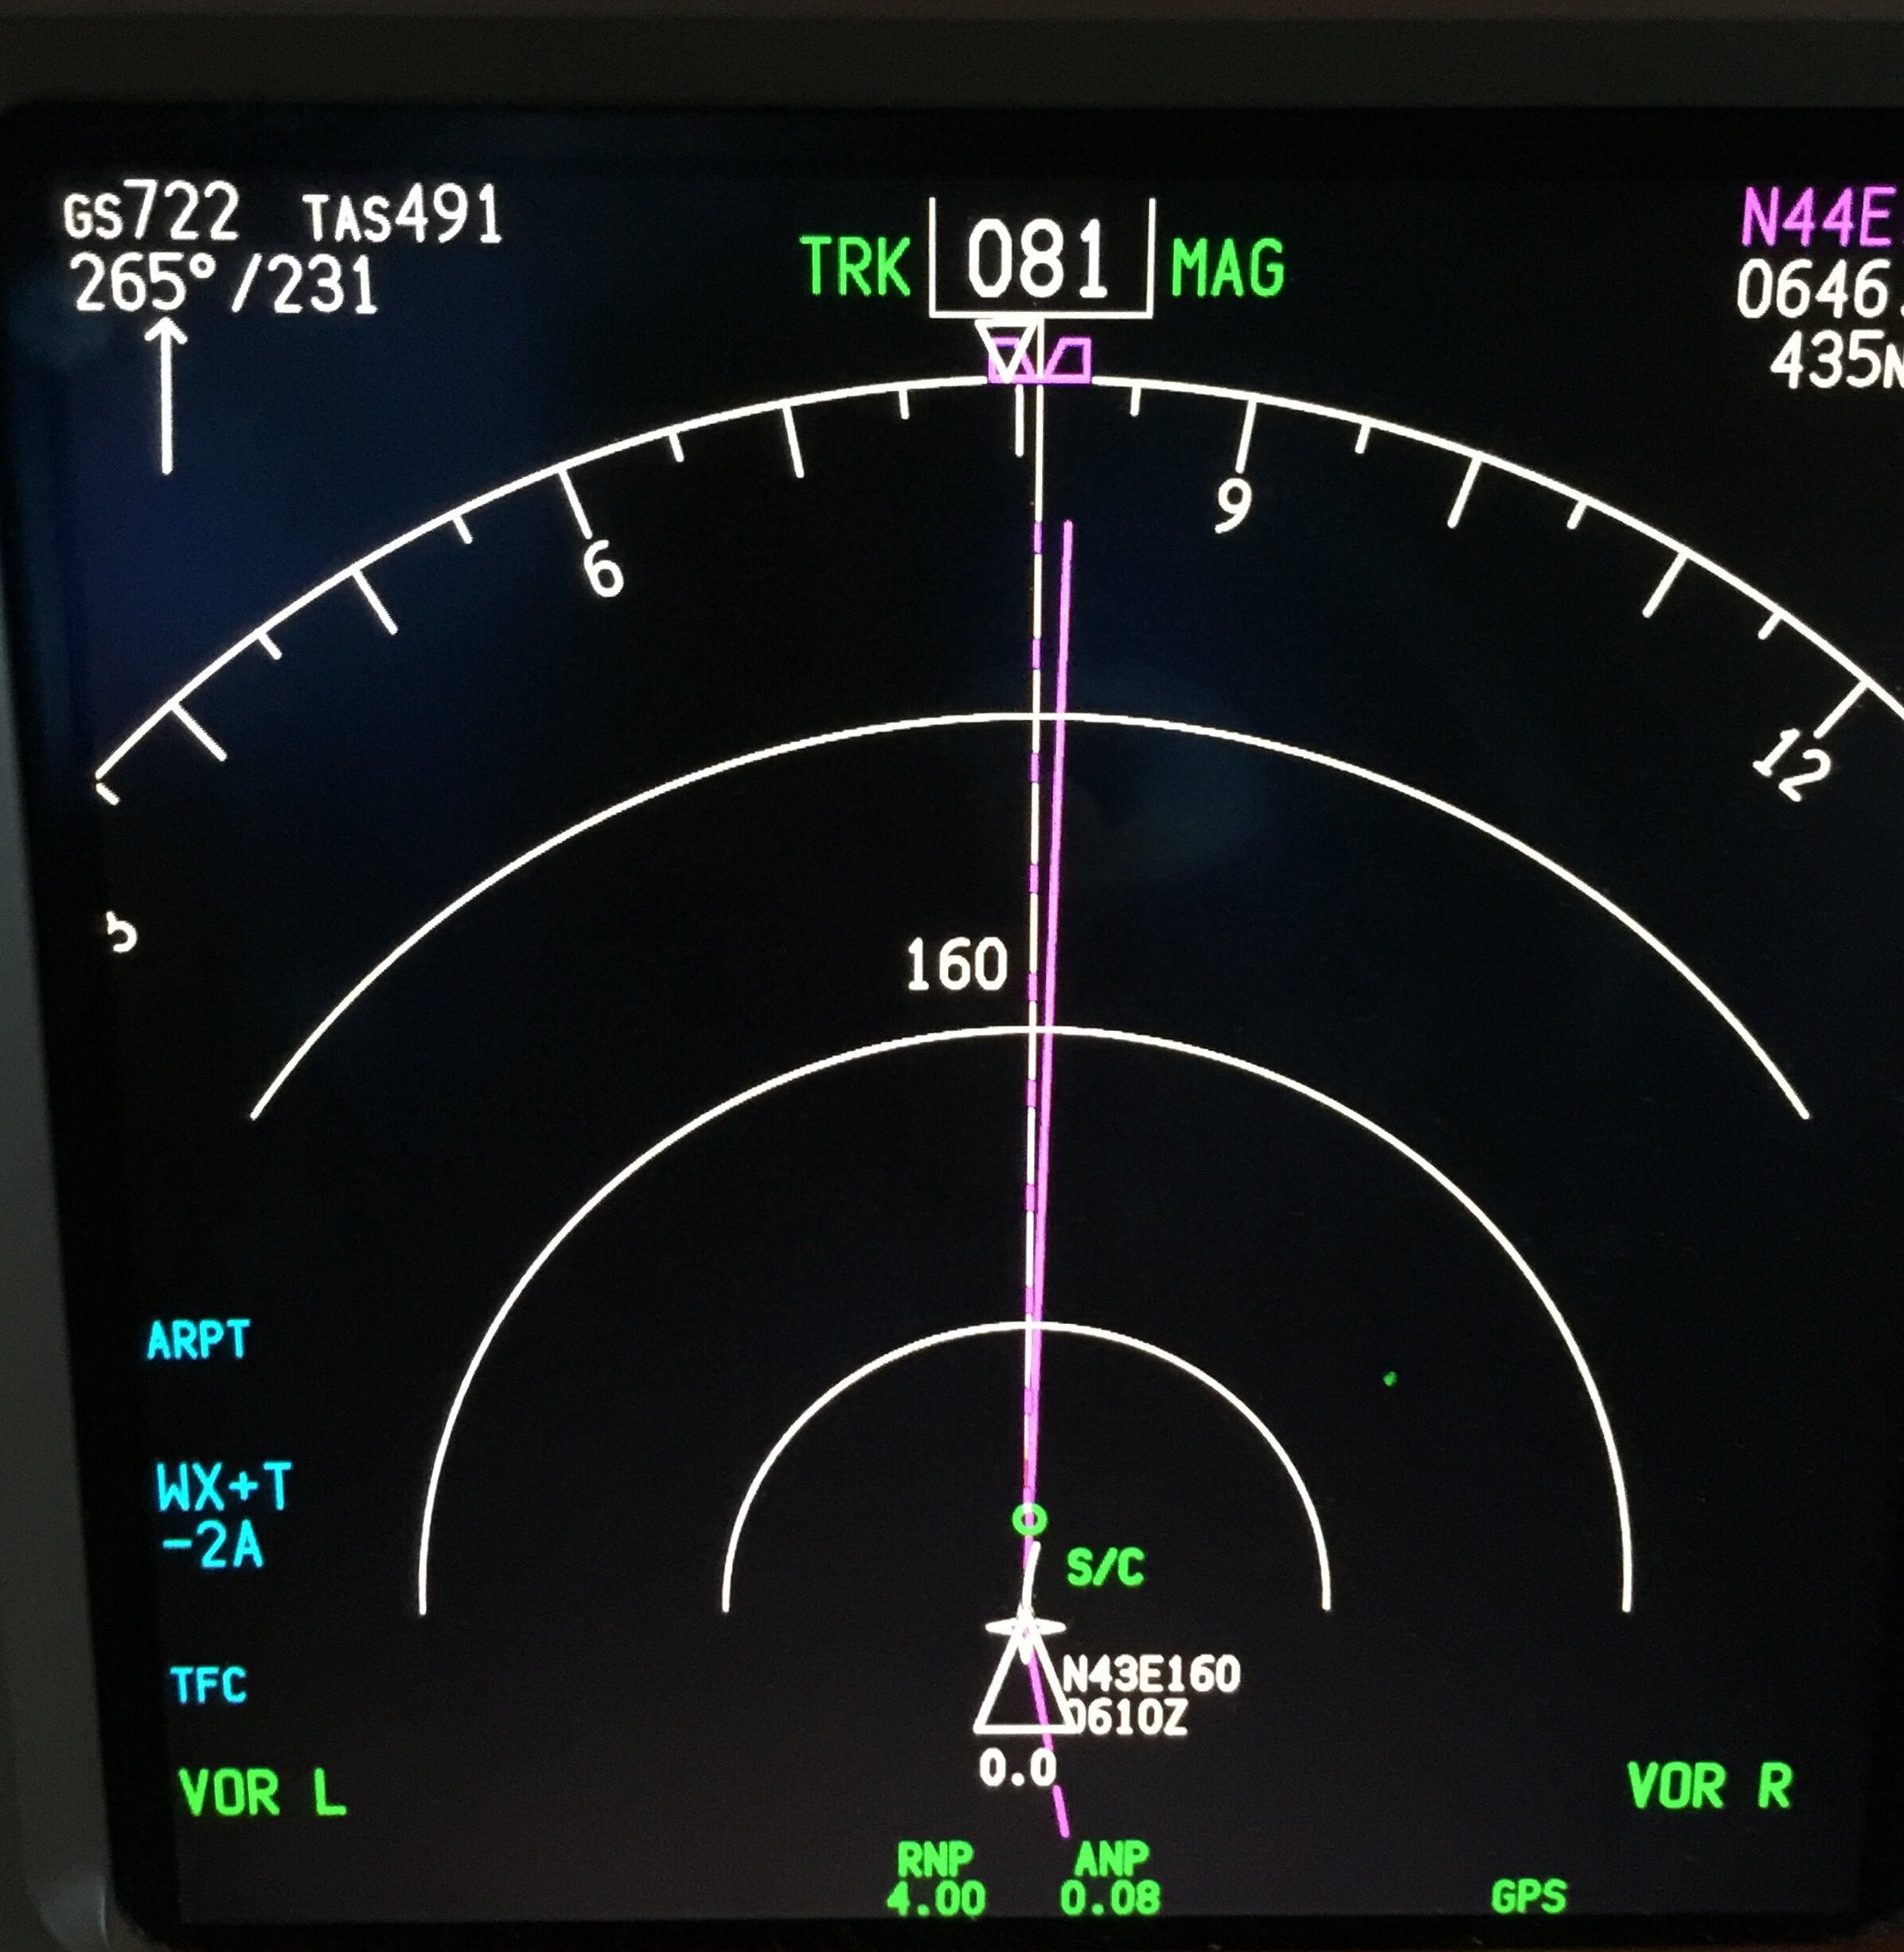 How is that for a jet stream? Look in the top left corner. The winds are from the west at 231 knots! This is over the Pacific Ocean notorious for strong winds. This pic was given to me from a pilot in AC's new hire course.